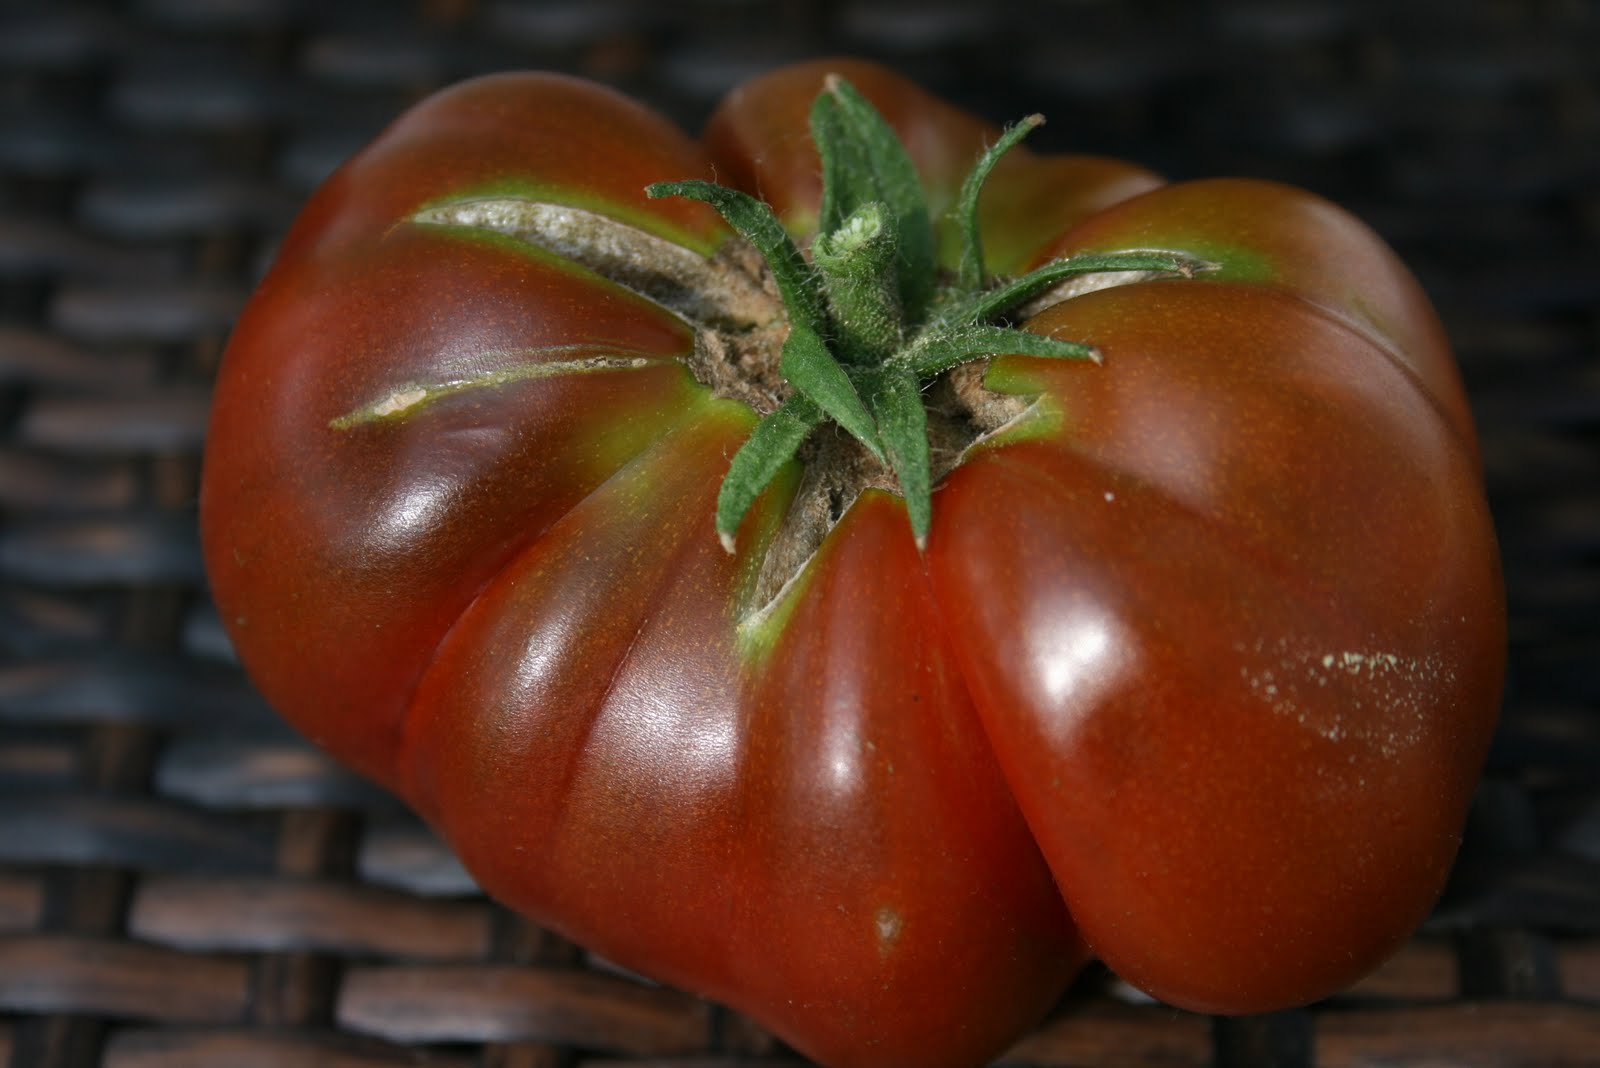 how to tell when green zebra tomatoes are ripe